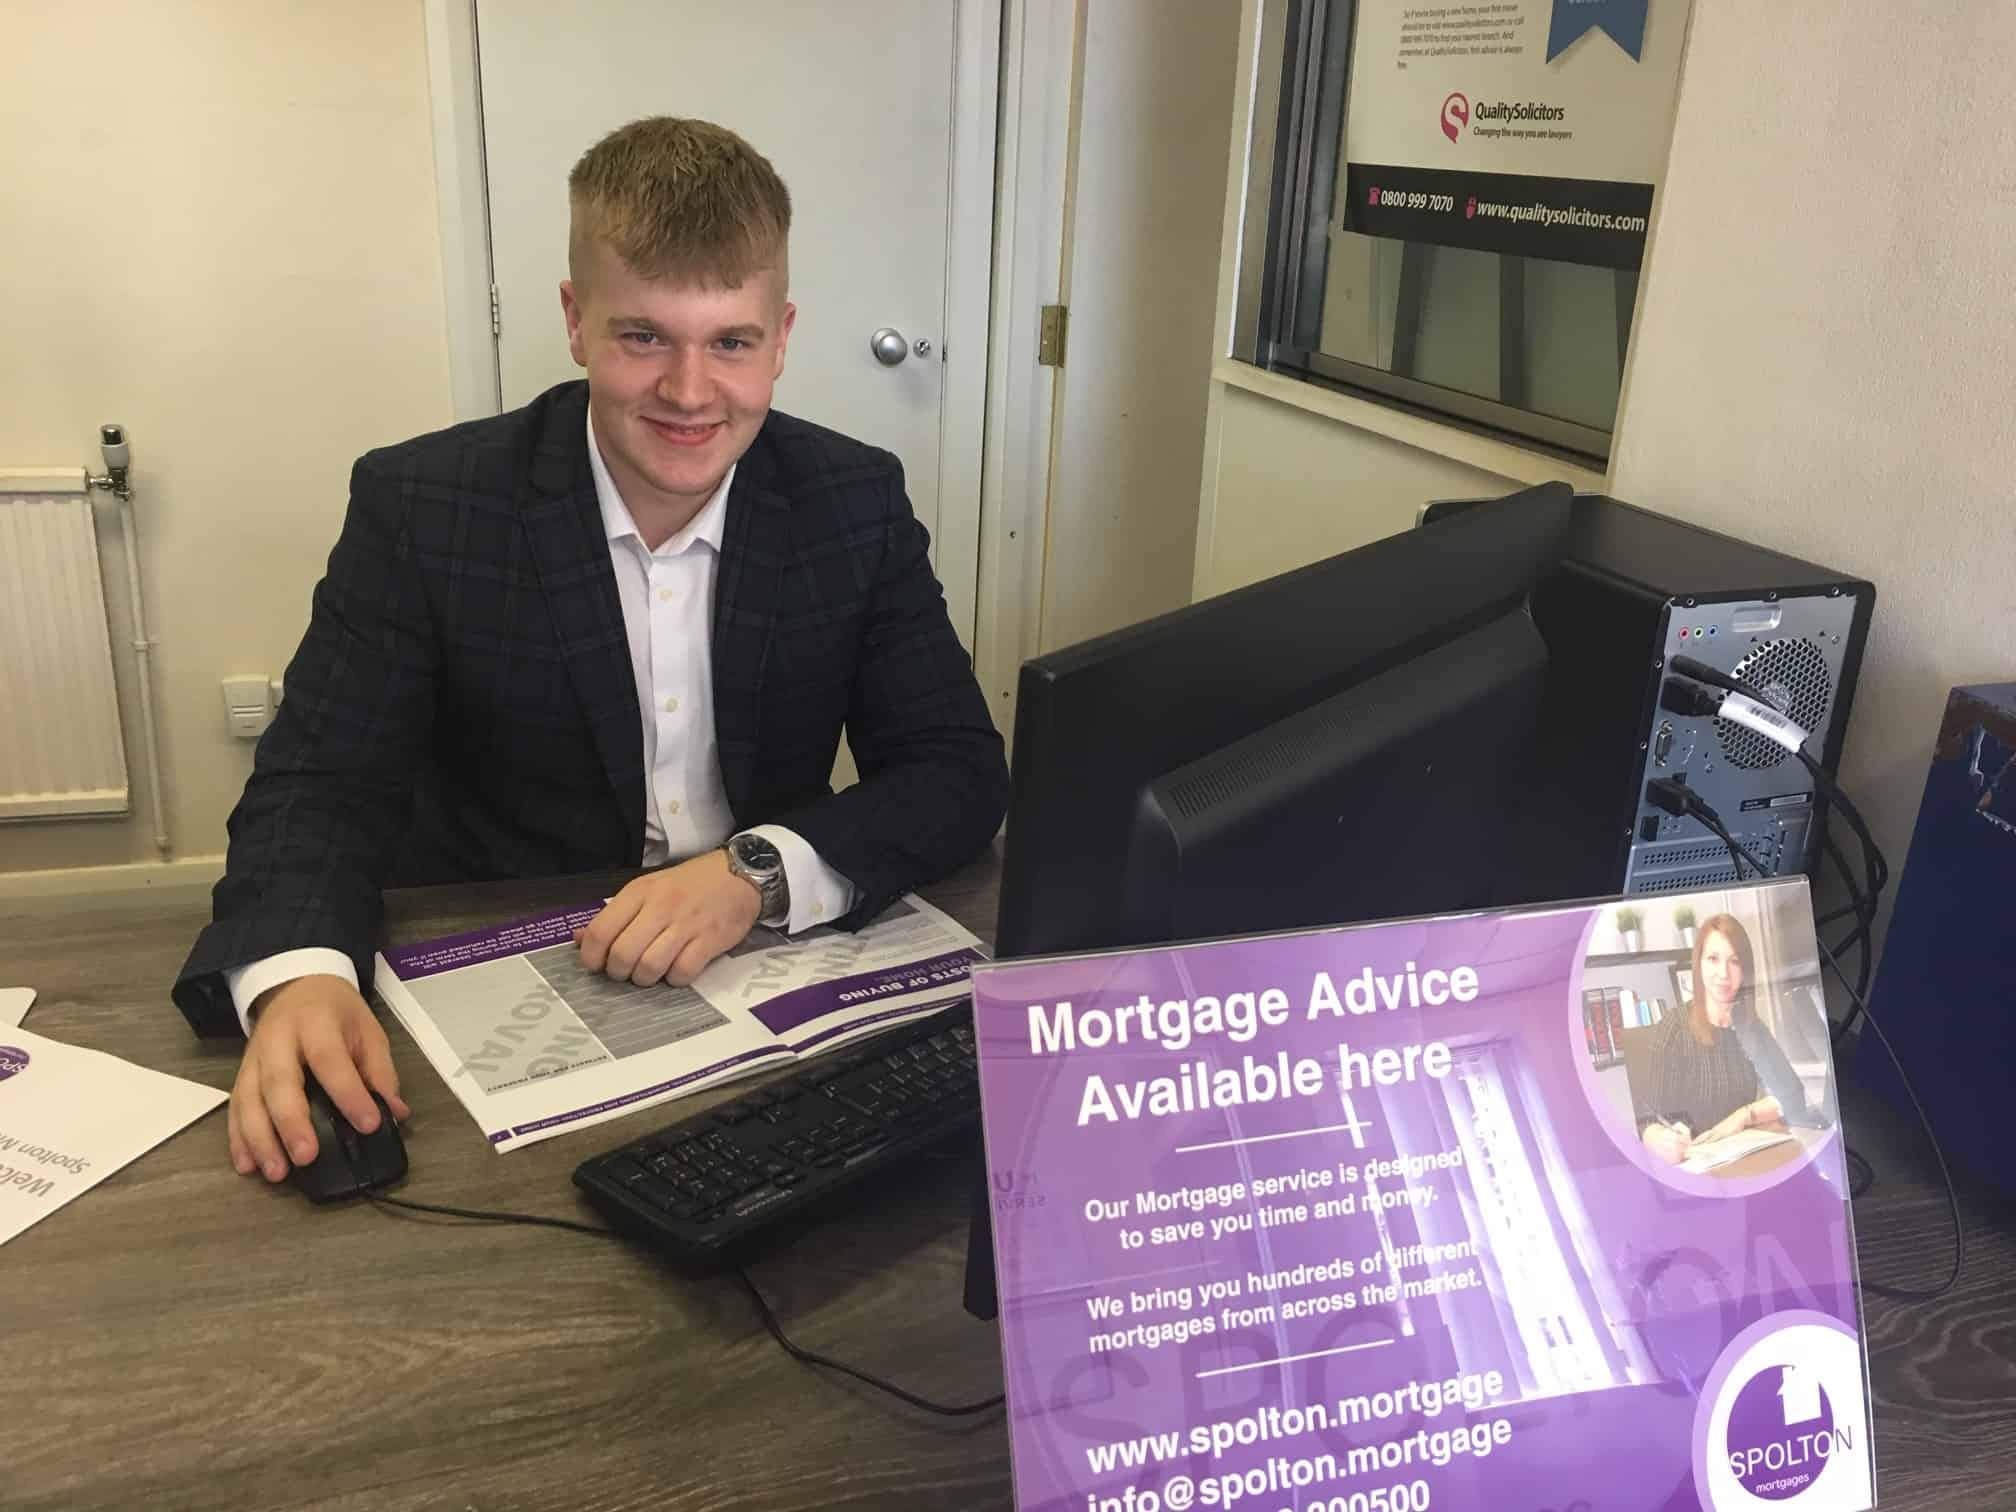 Spolton Mortgages team has expanded